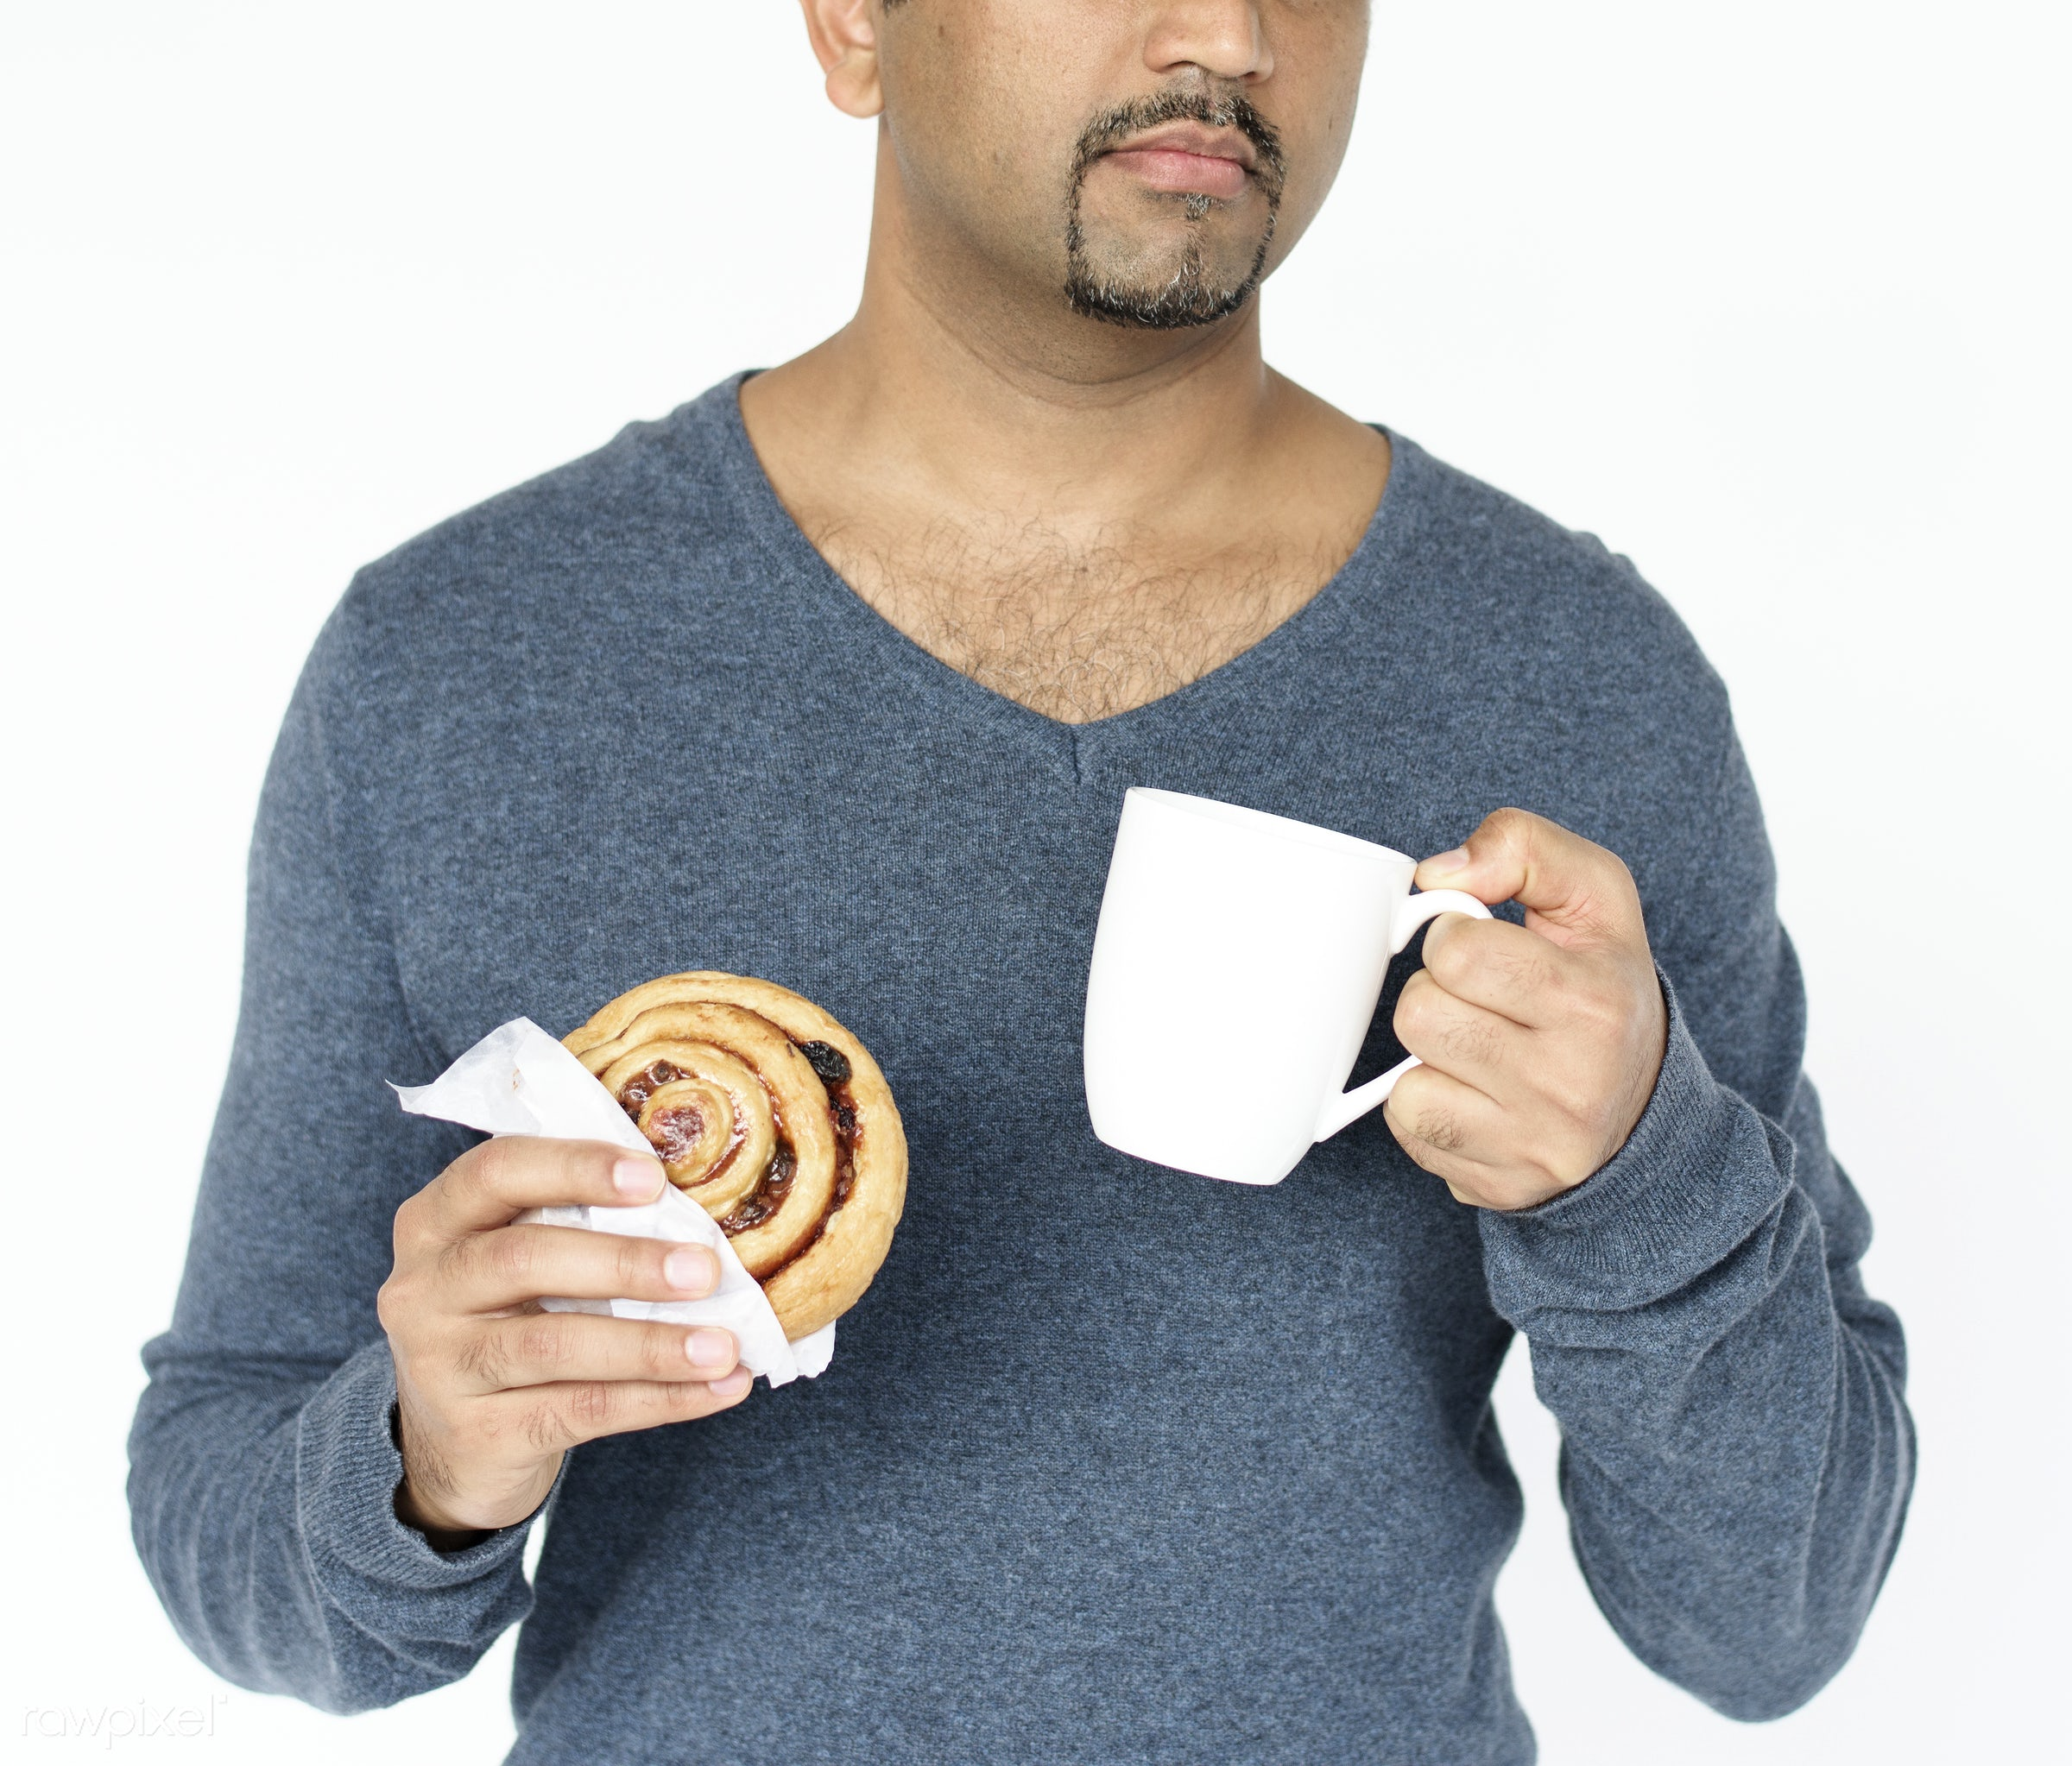 studio, cup, expression, person, holding, tea, people, race, mug, break, roll, bread, drink, lifestyle, gentleman, isolated...